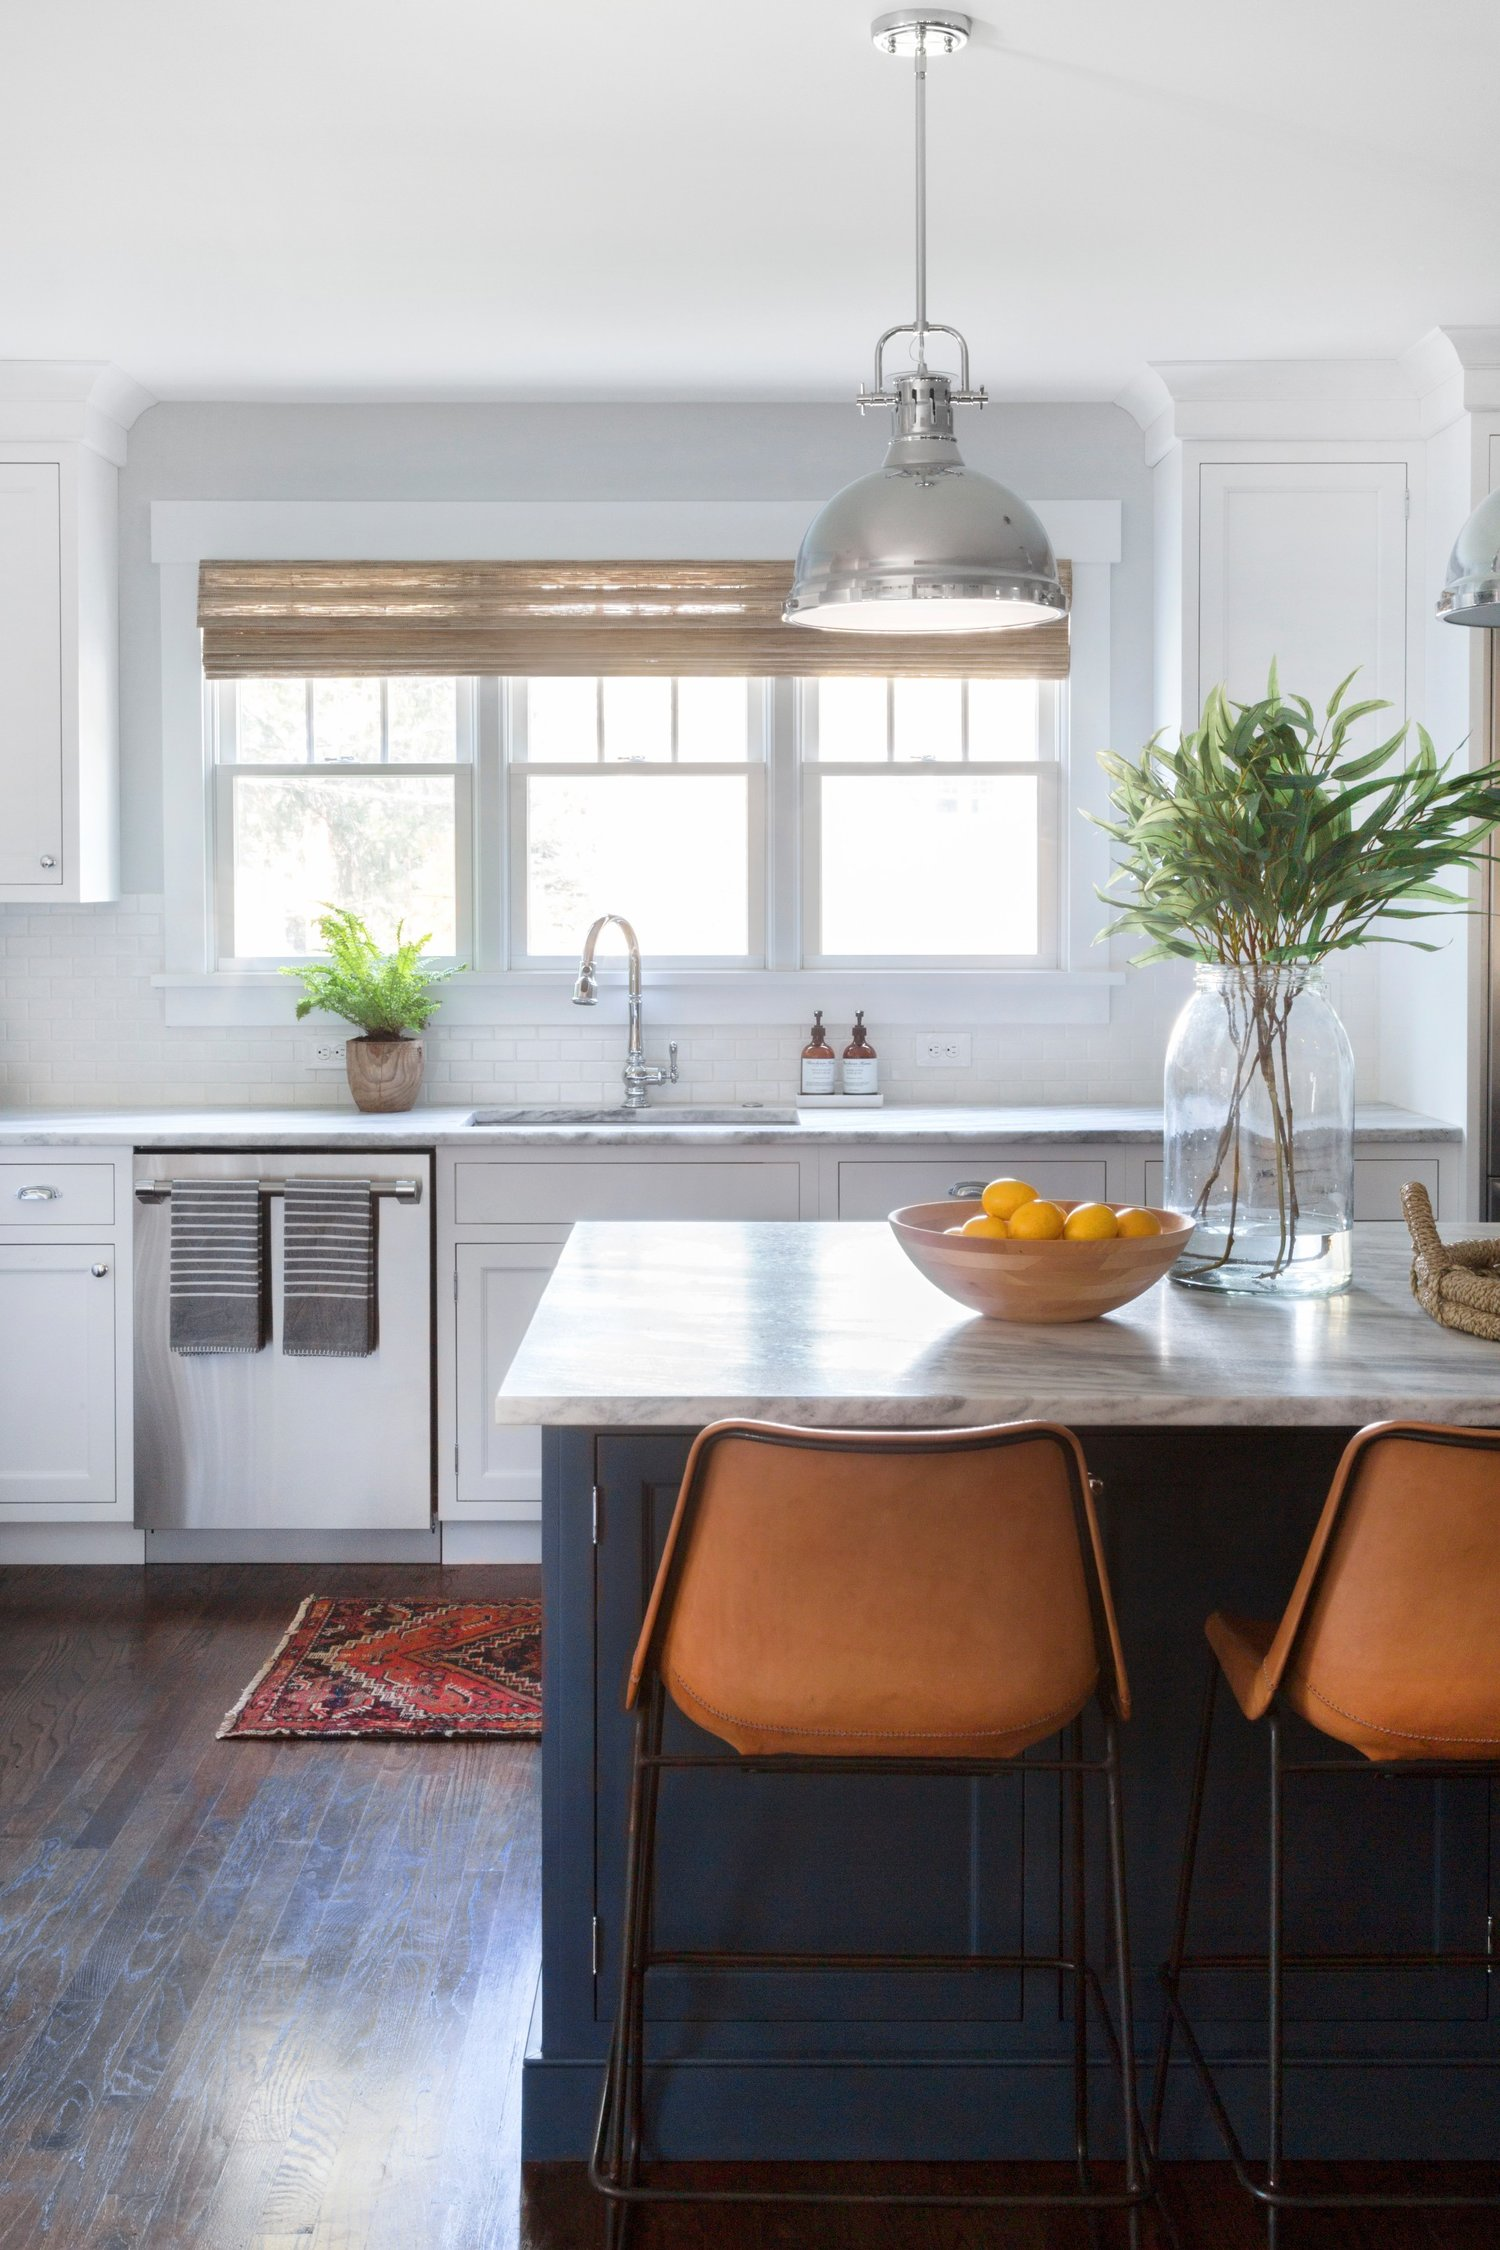 Orange chairs lined up along kitchen bar